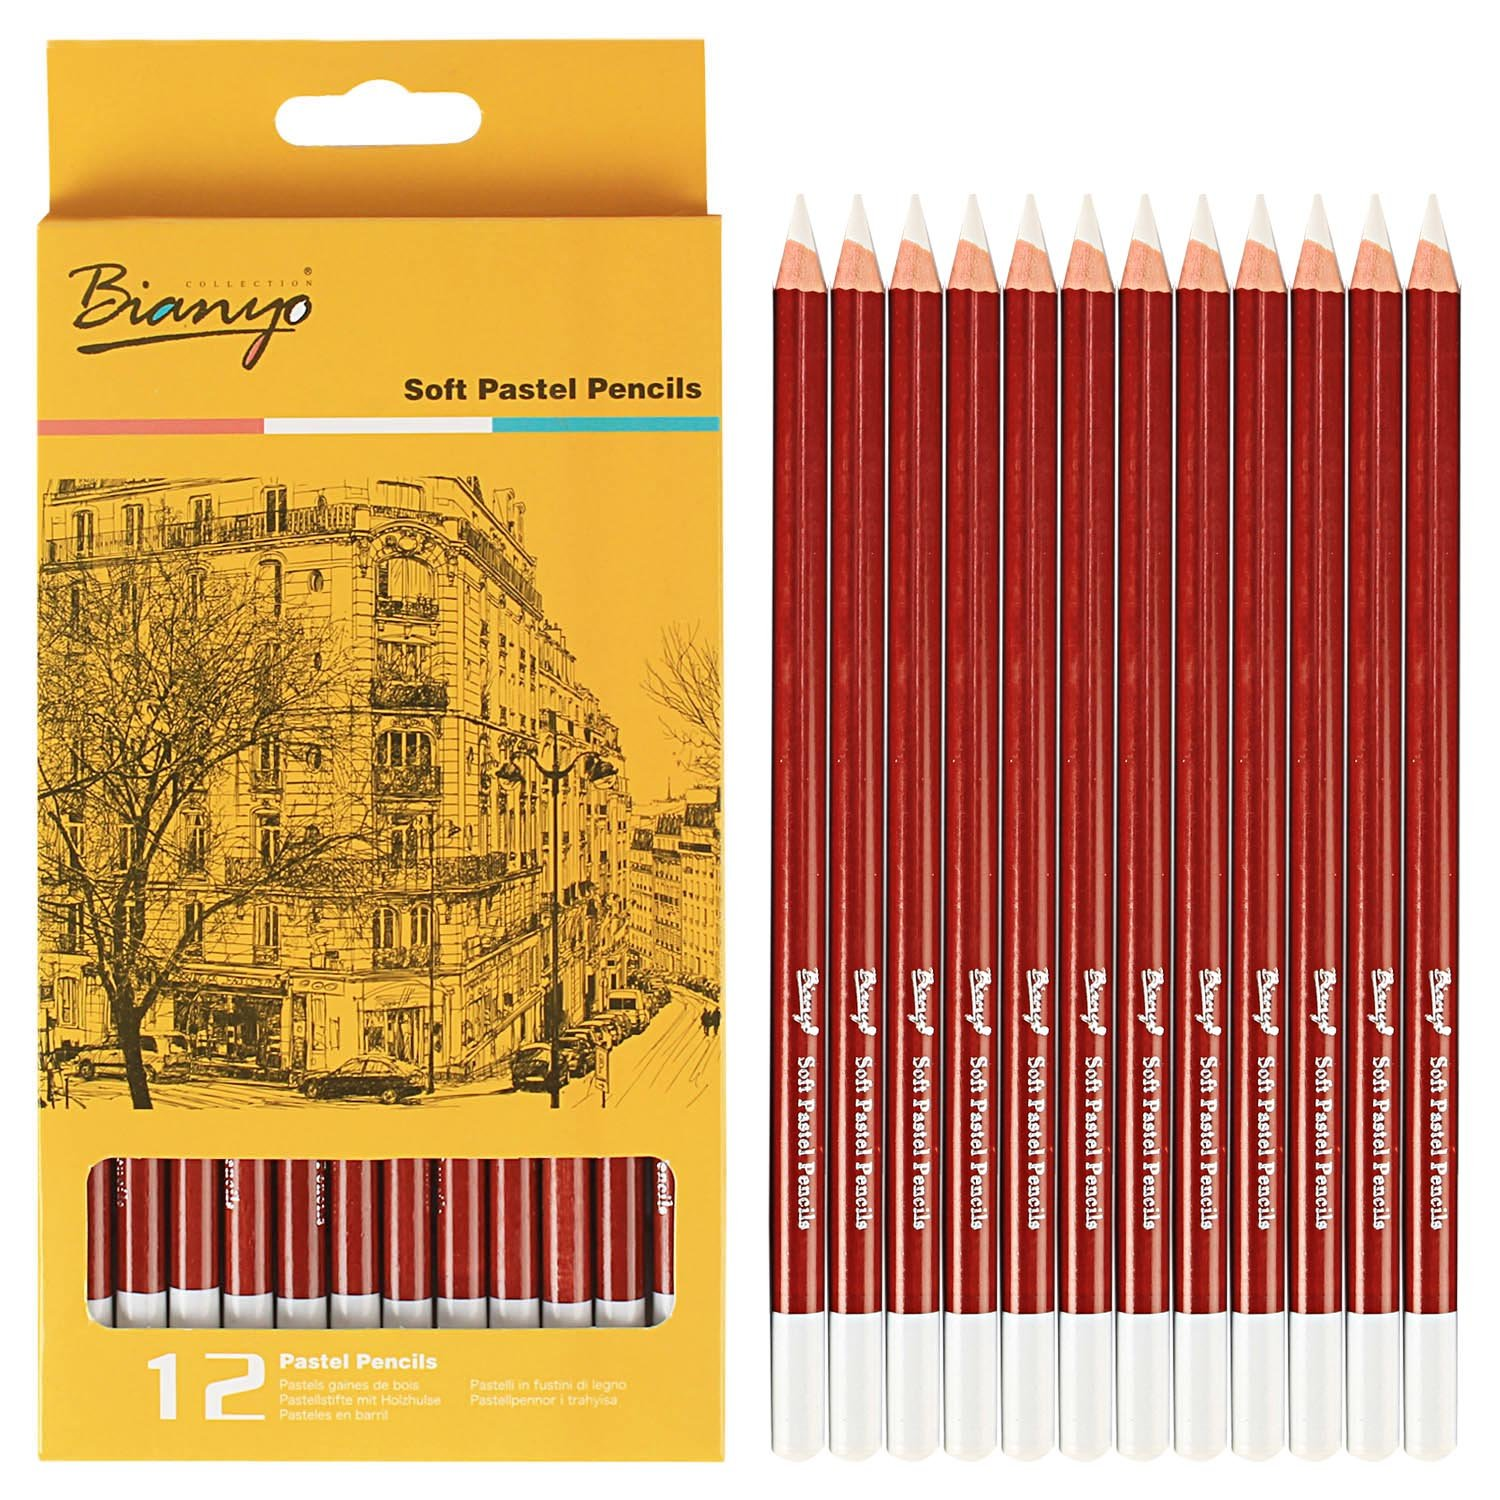 Bianyo white soft pastel pencil set for art drawing sketching 12 pcs white amazon in home kitchen